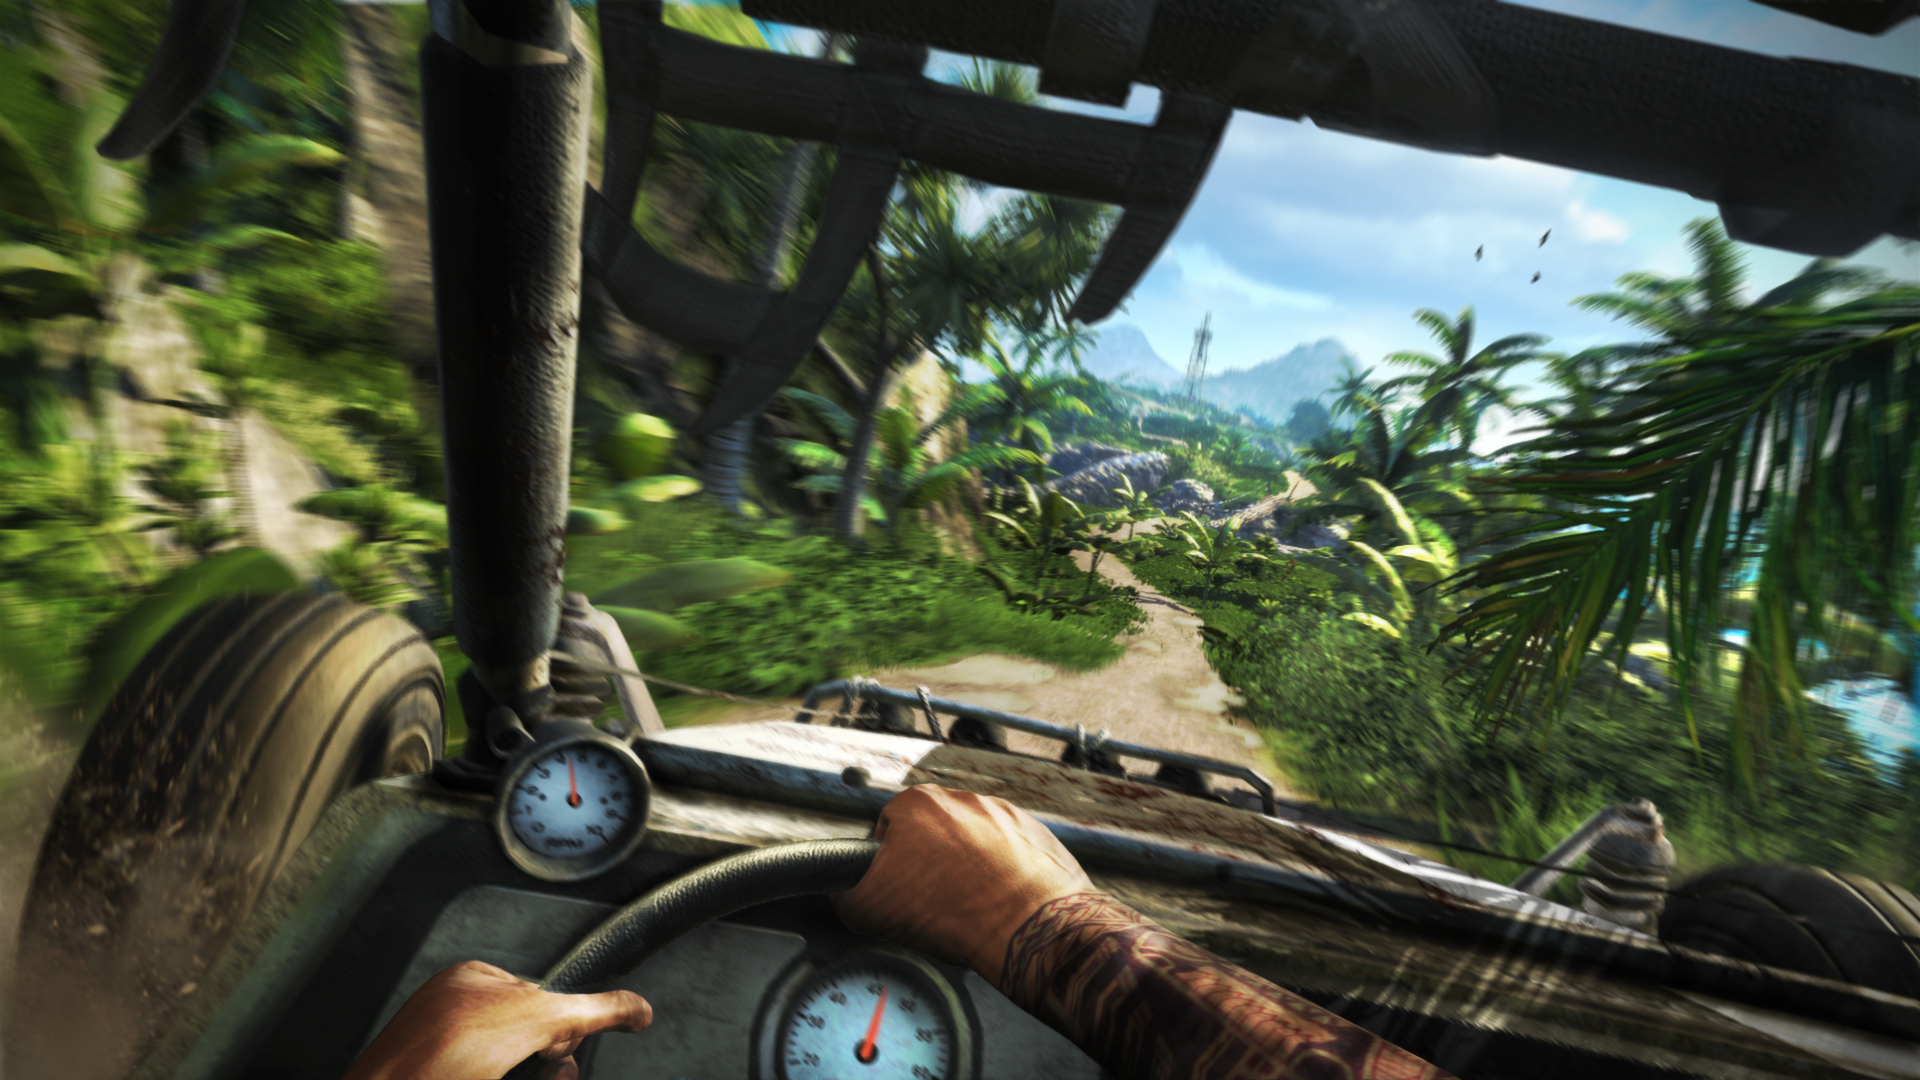 far cry 3 gameplay settings